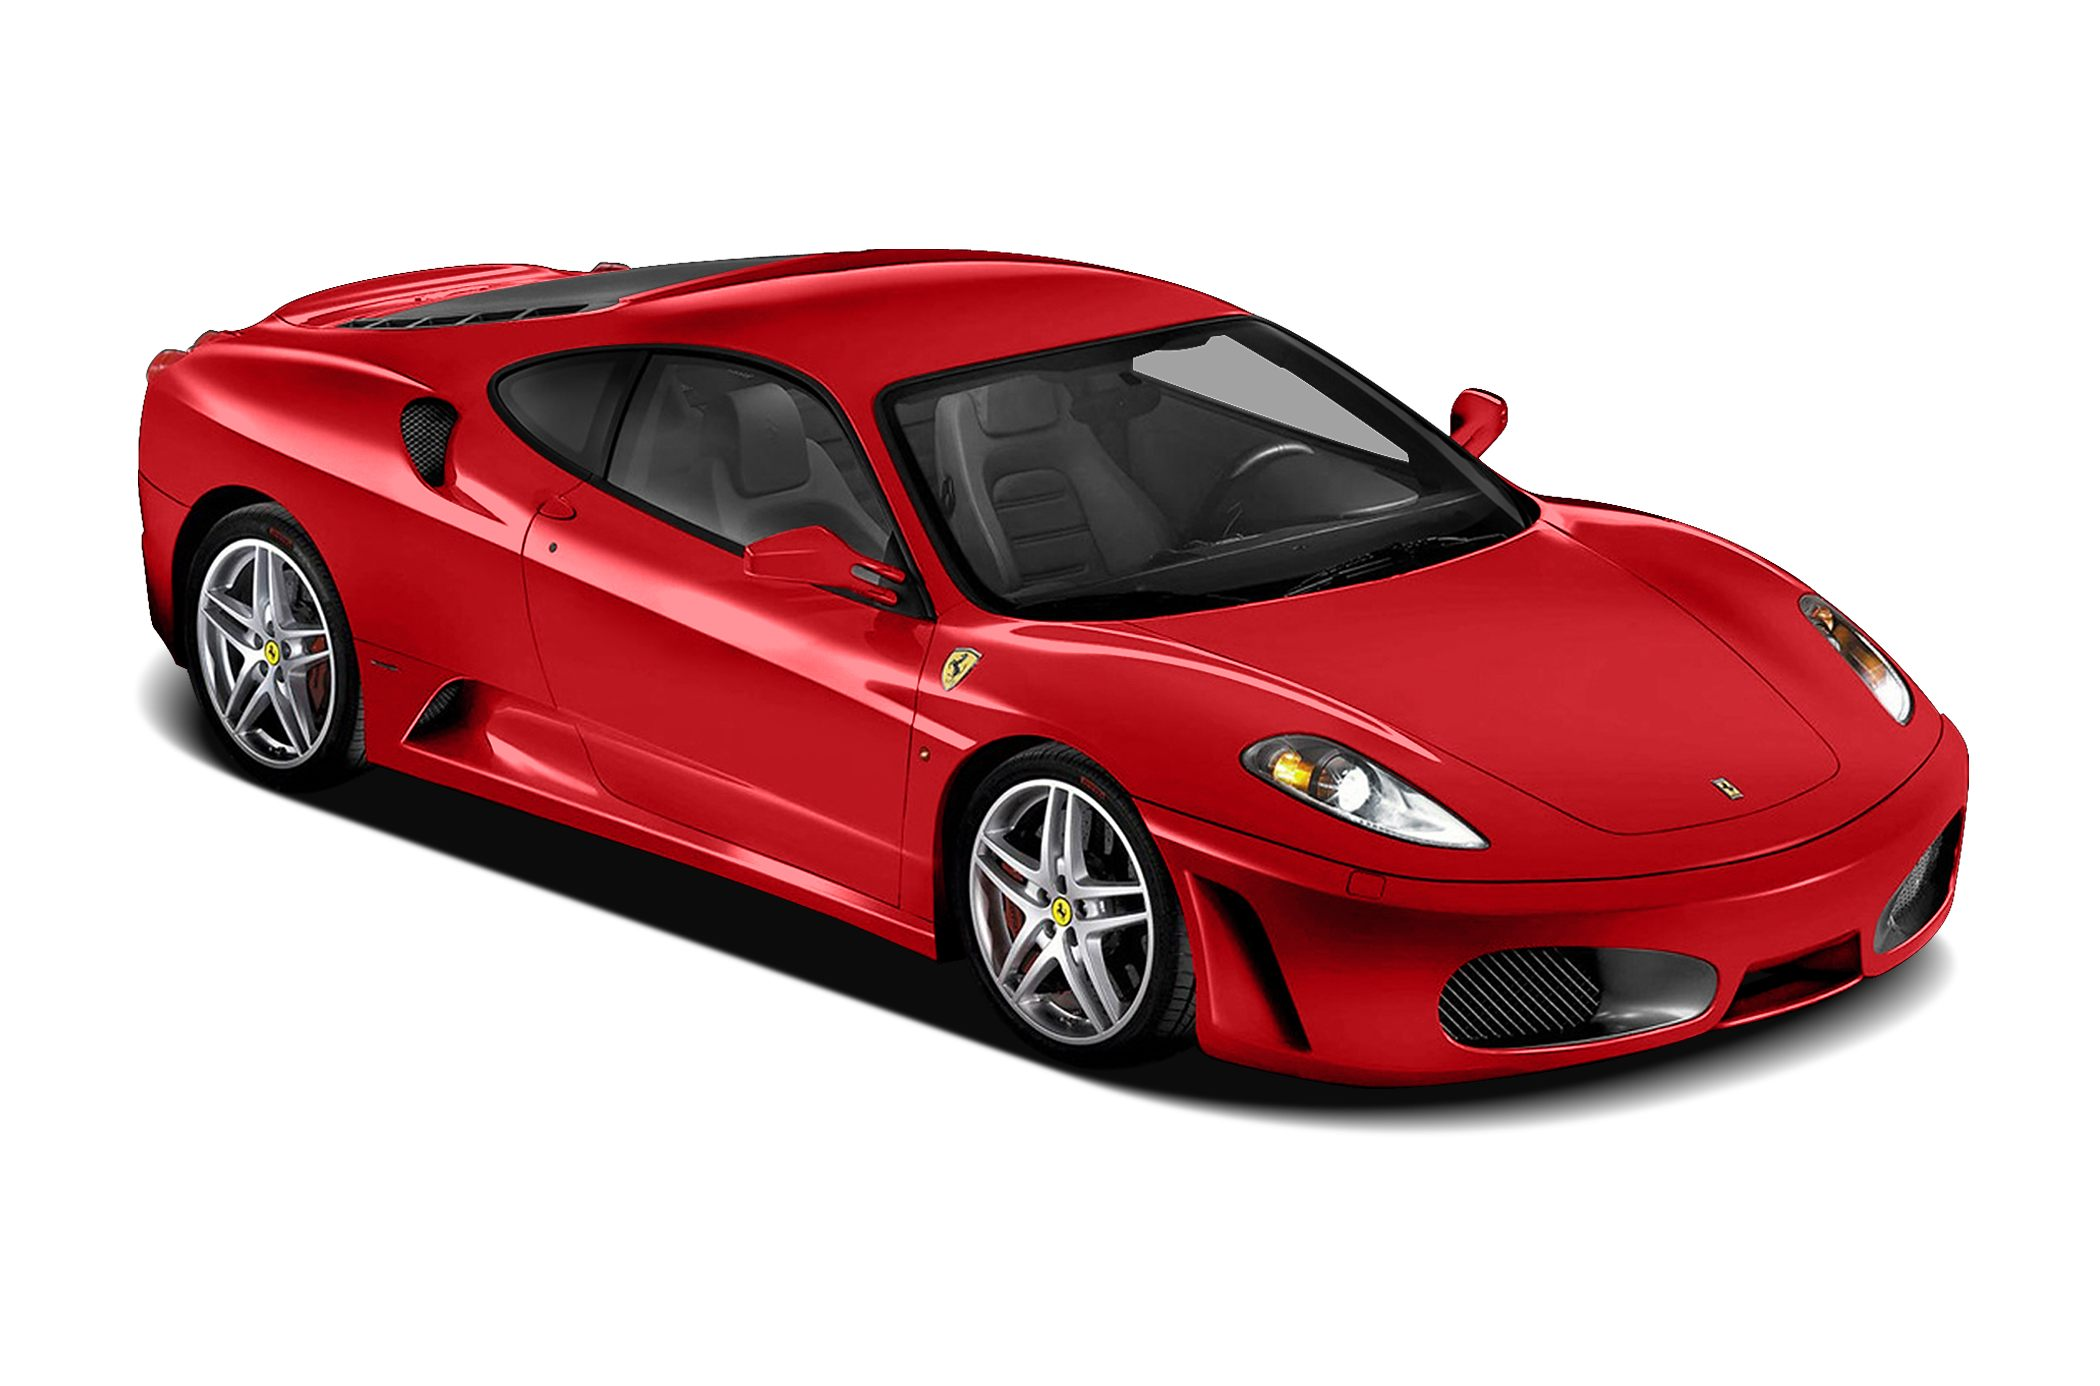 2008 Ferrari F430